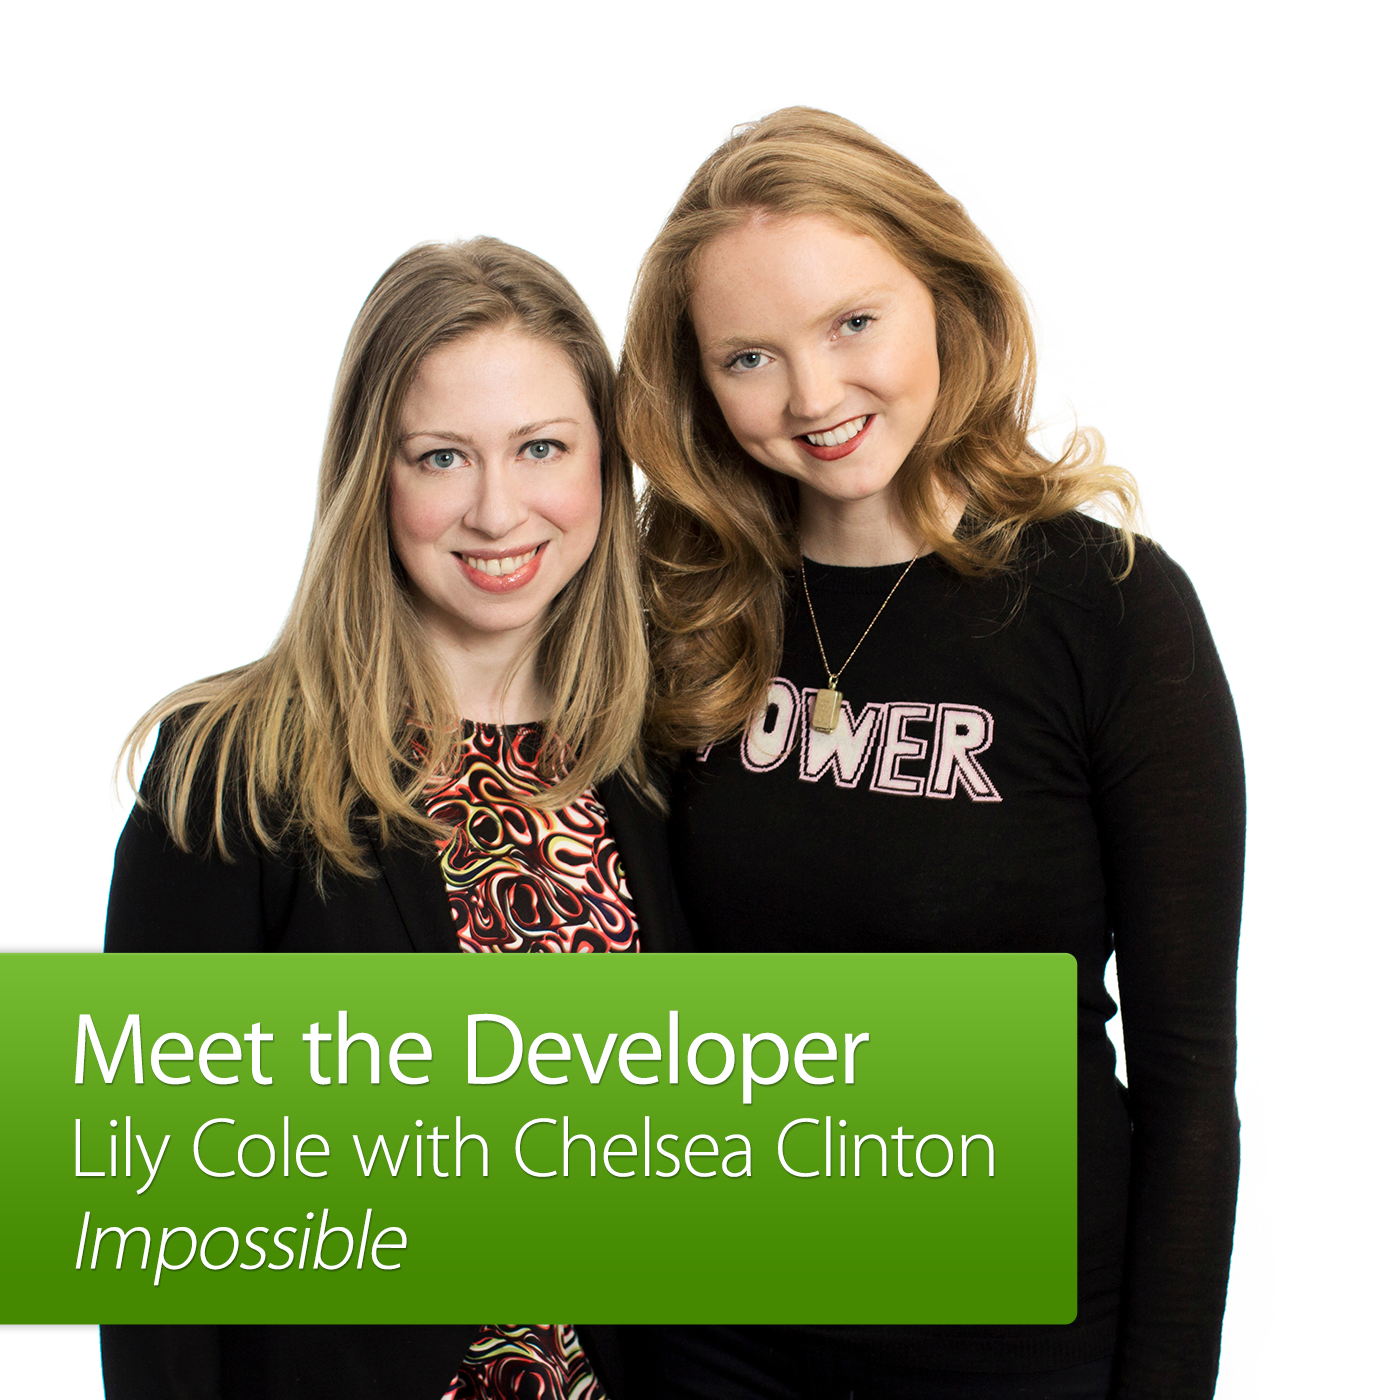 Lily Cole with Chelsea Clinton: Meet the Developer